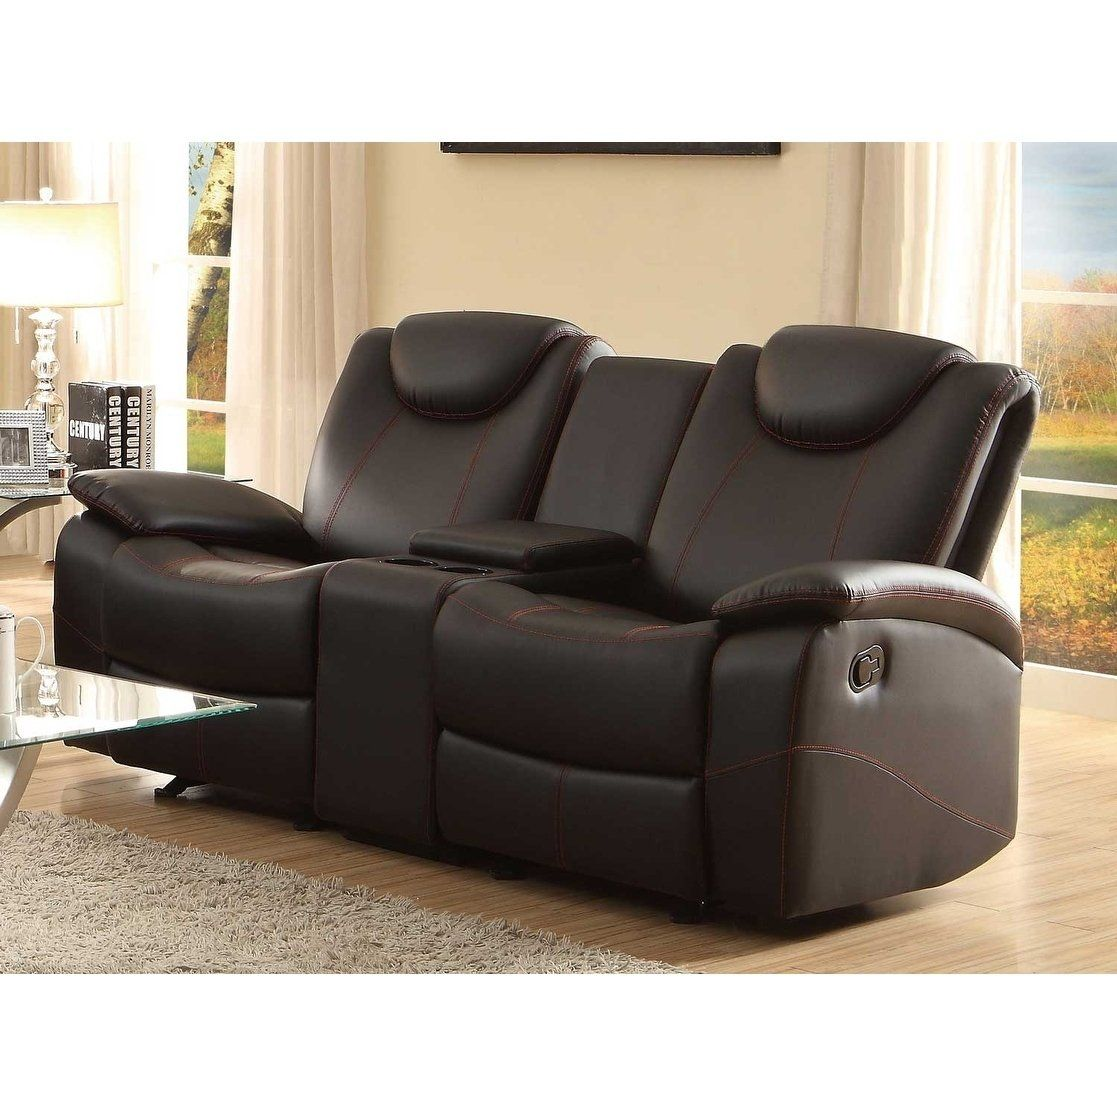 Glider Recliner Loveseat With